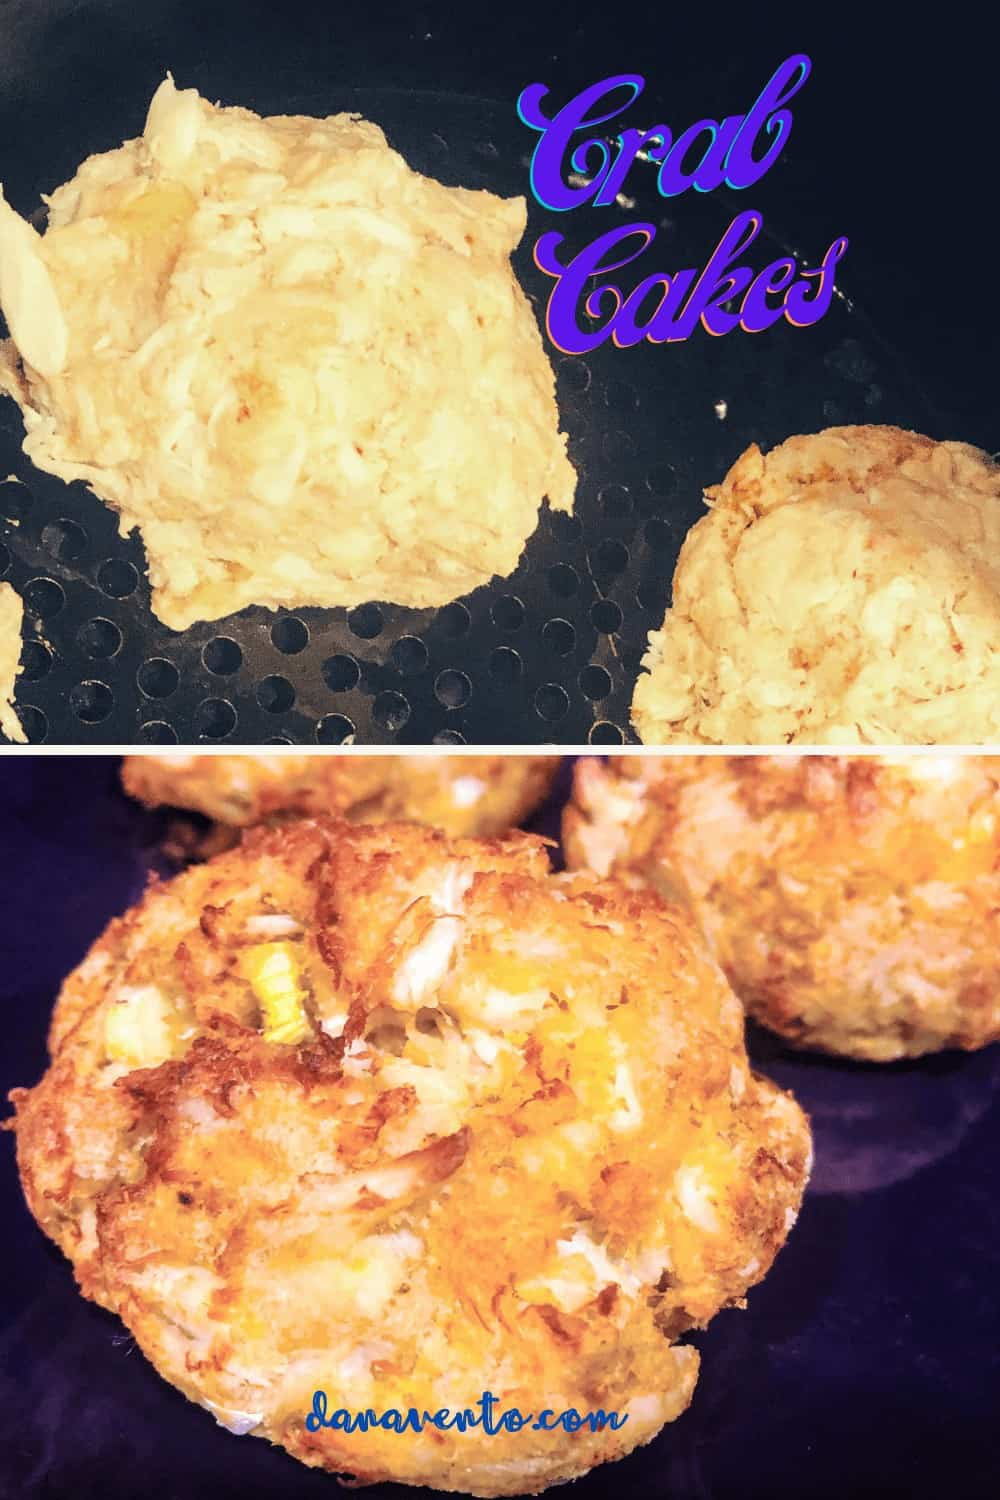 Crab cakes in air fryer before and after frying with no frying oil